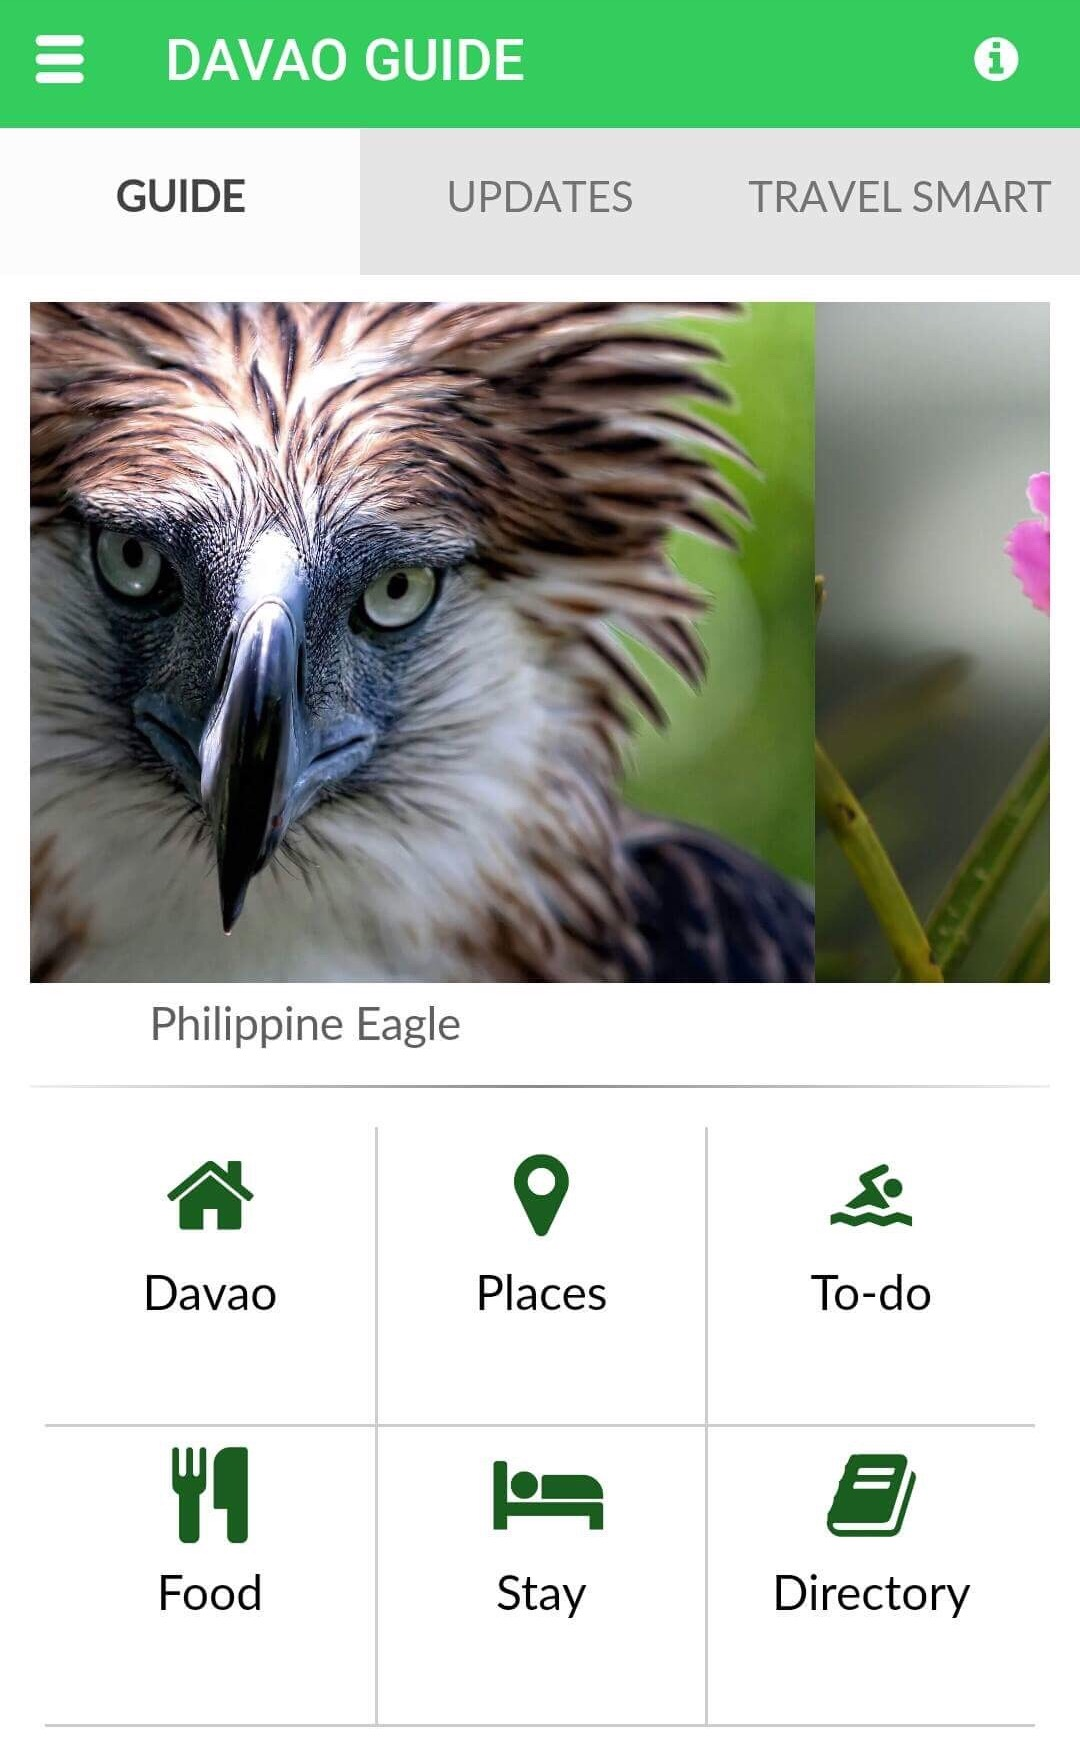 DAVAO GUIDE: A Smart App to Digitize  Tourism Experience in Davao